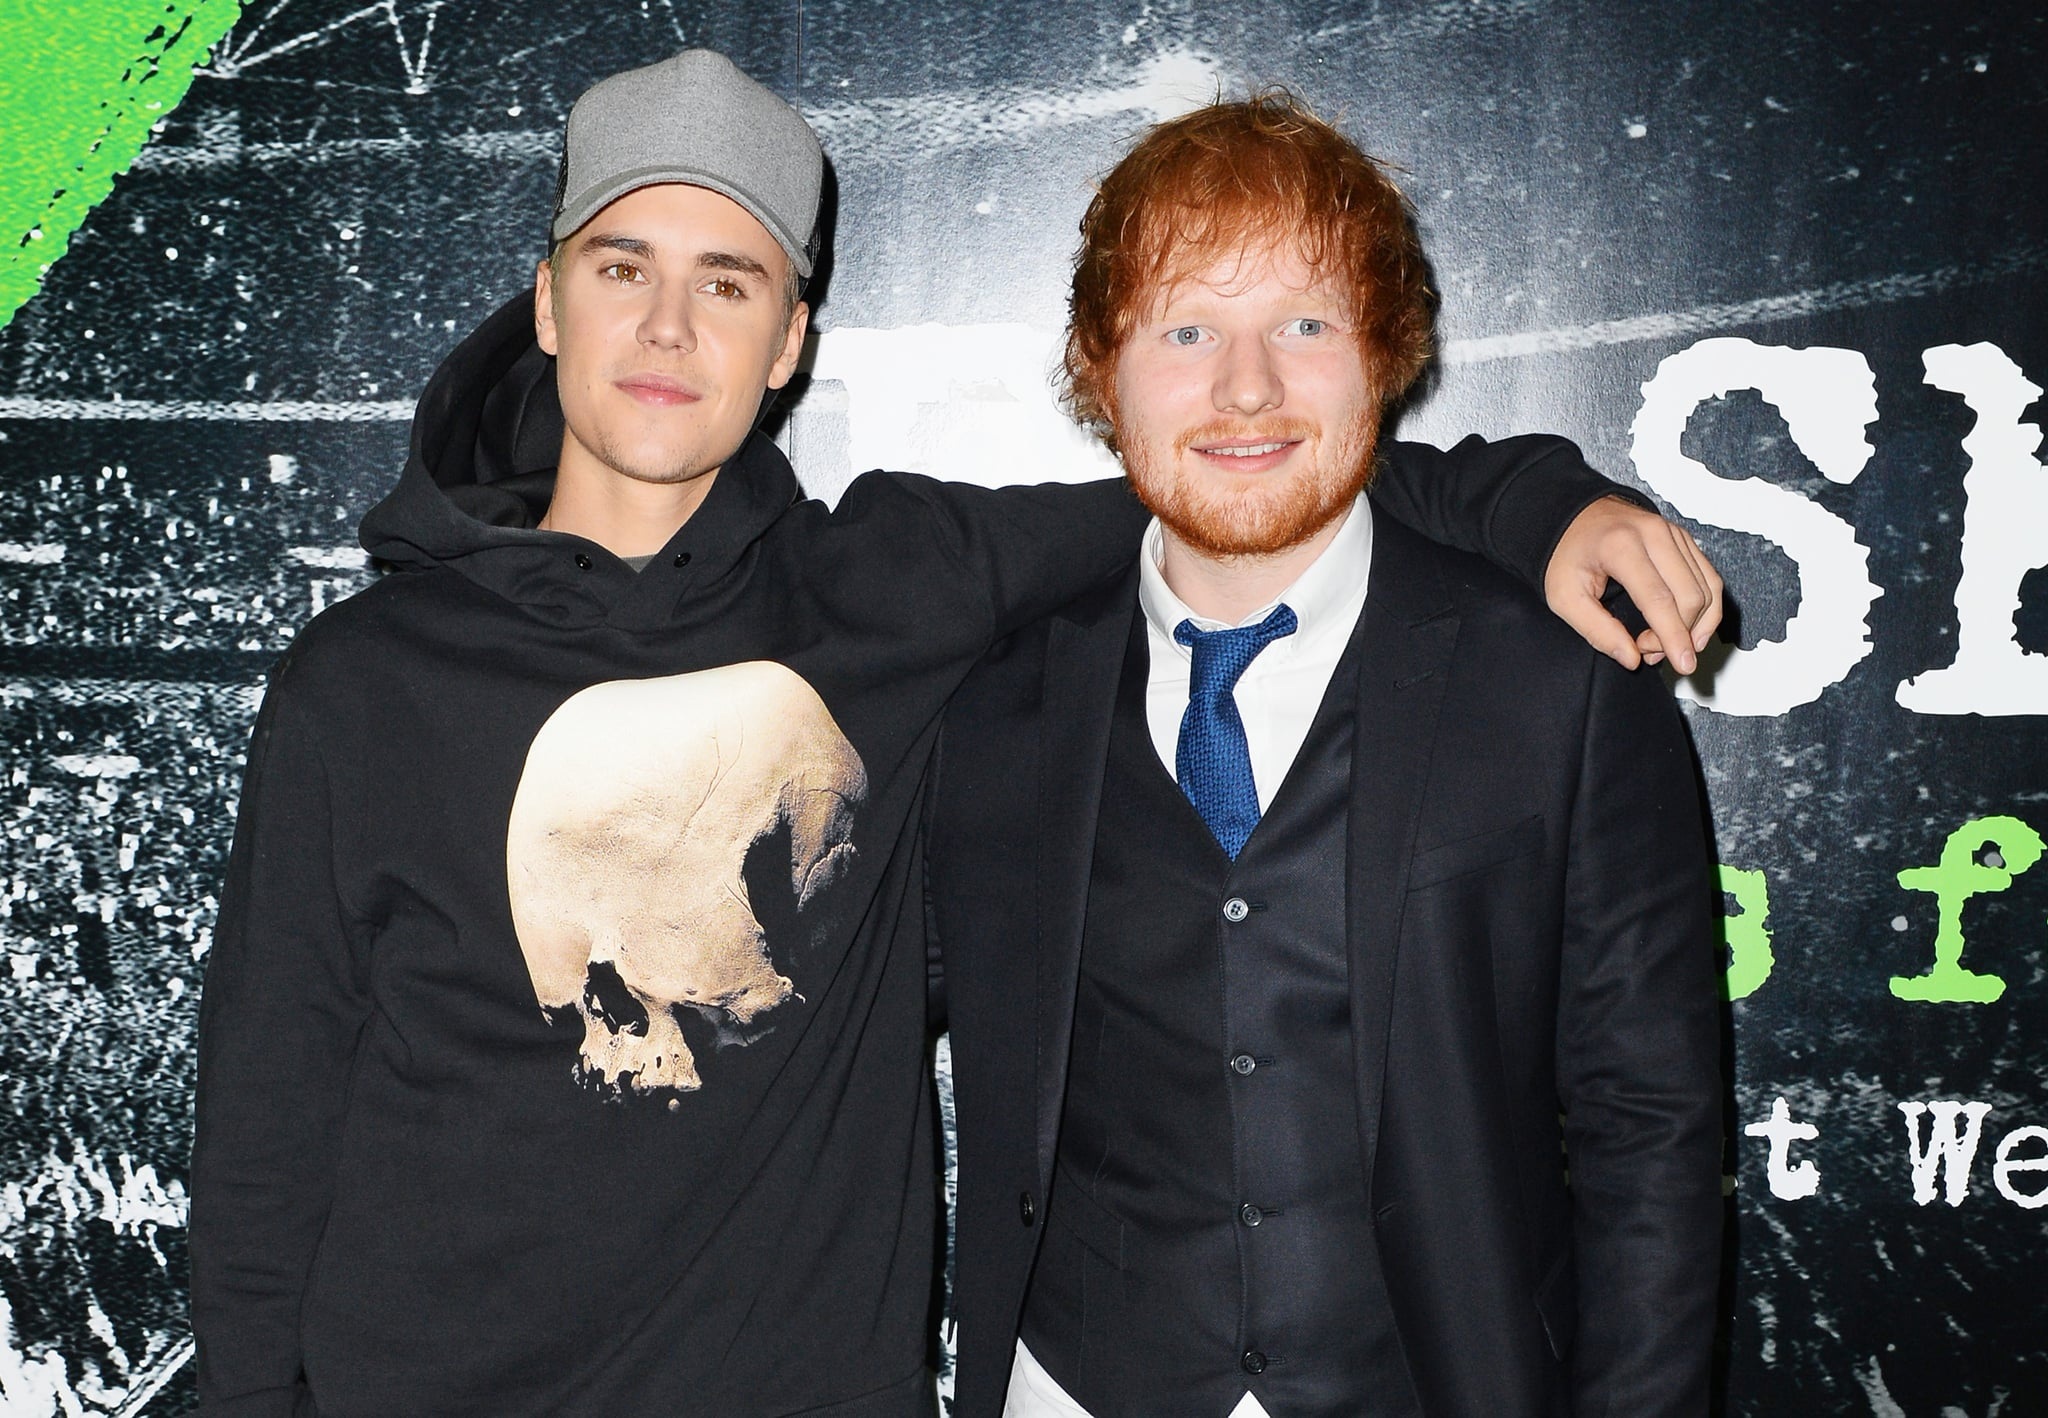 ed sheeran hit justin bieber a golf club popsugar celebrity share this link